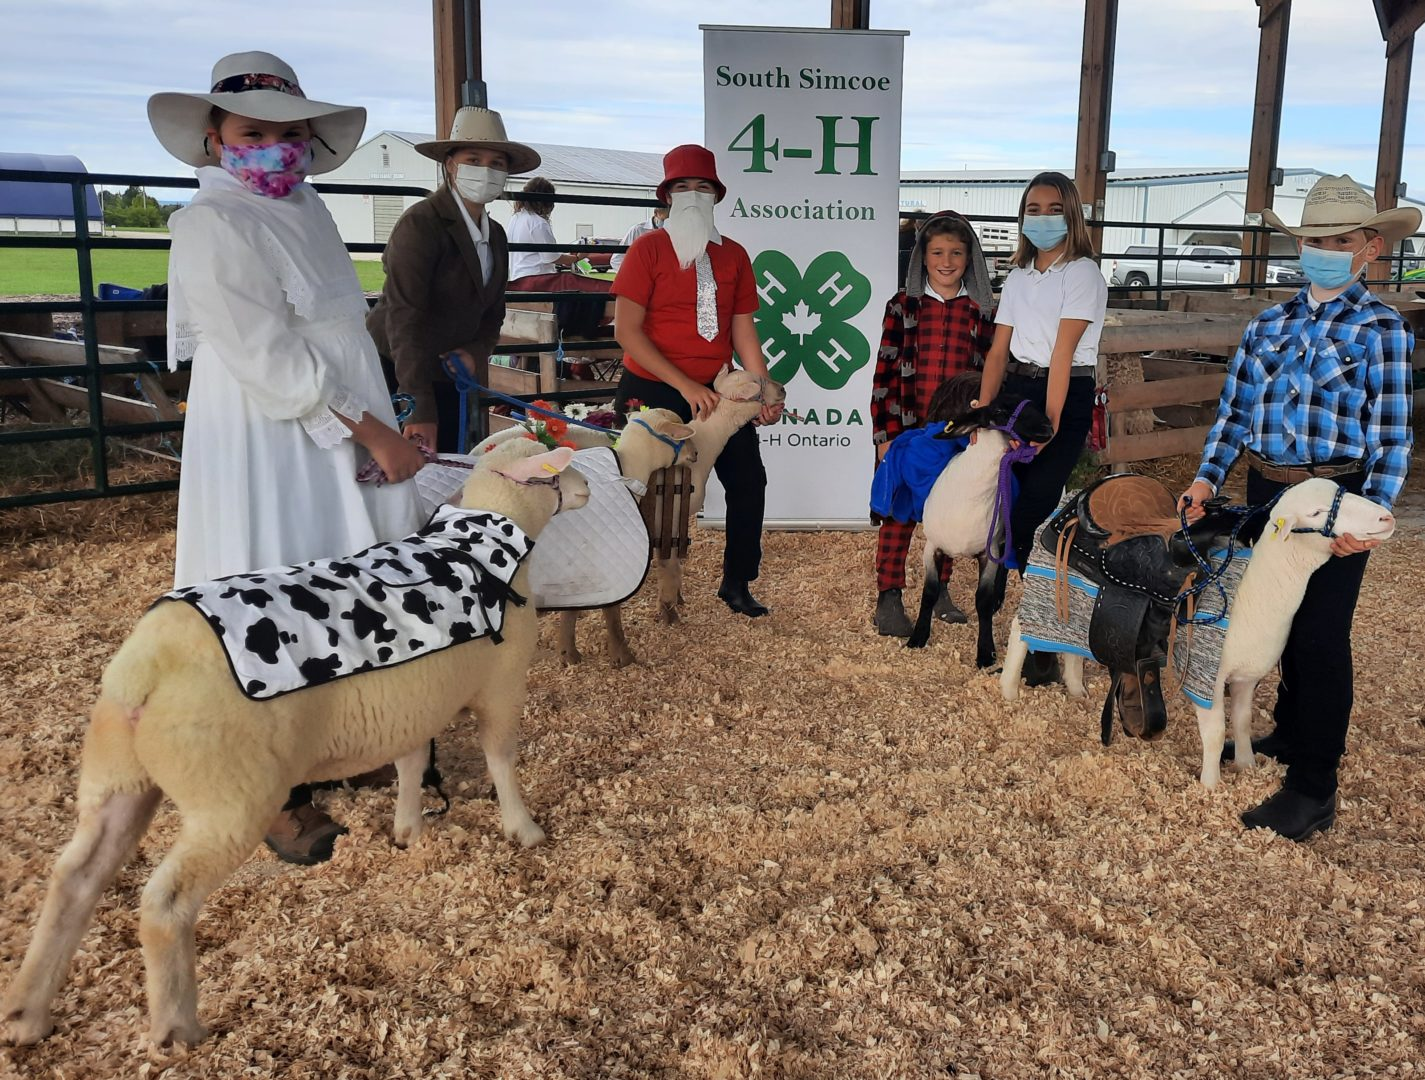 Members and lambs dressed up at achievement day in Collingwood.